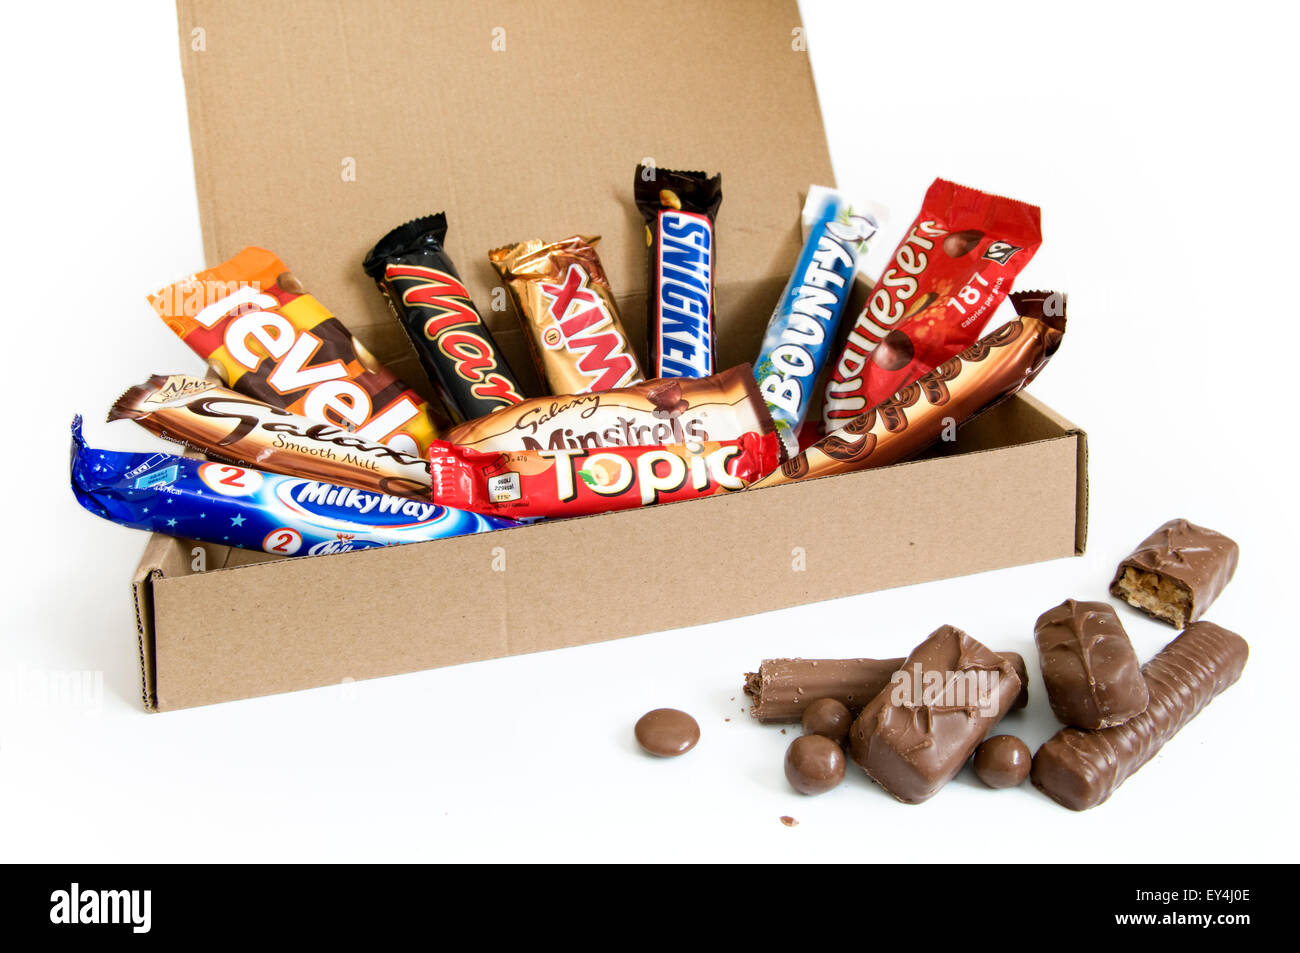 A box of Mars chocolate bar selection - Stock Image